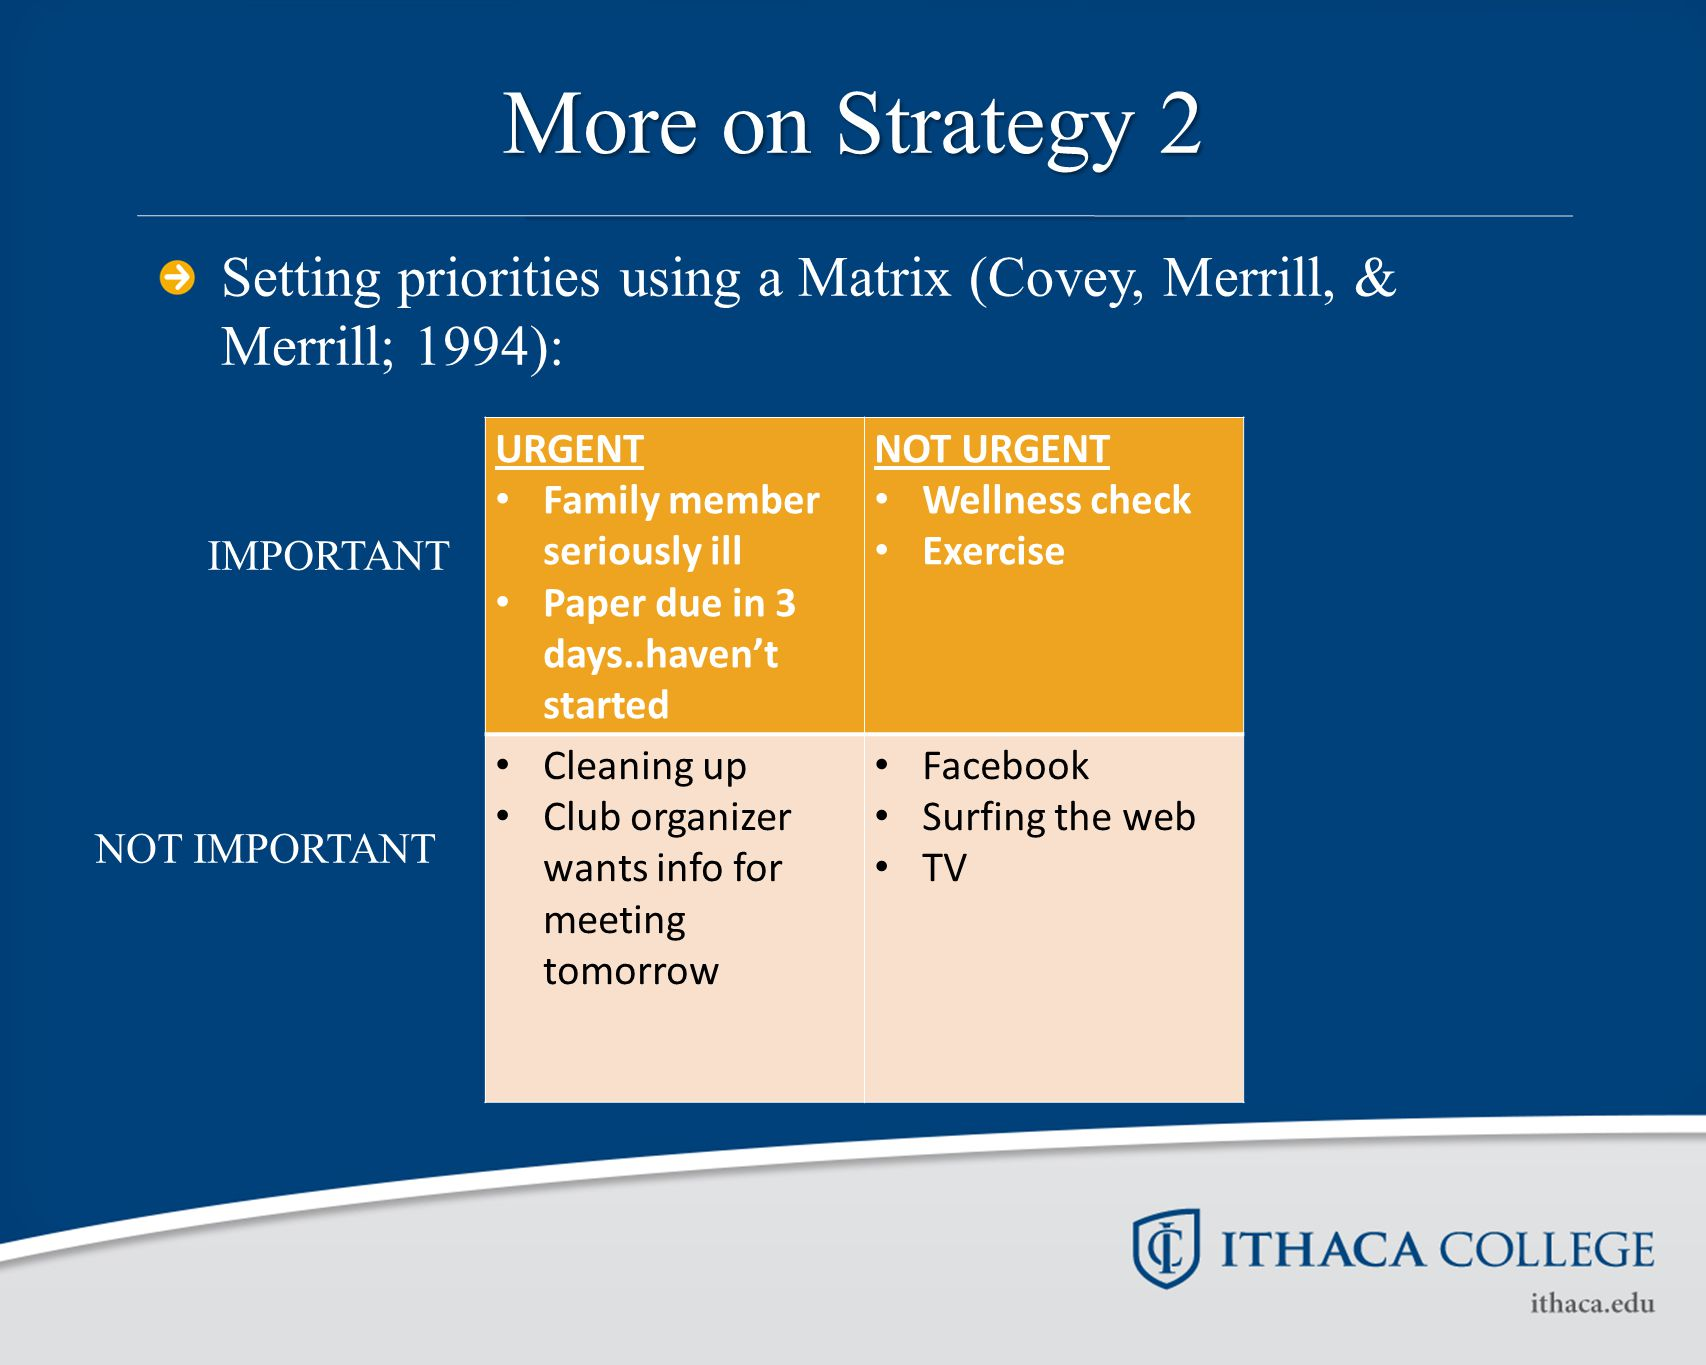 More on Strategy 2 Setting priorities using a Matrix (Covey, Merrill, & Merrill; 1994): URGENT Family member seriously ill Paper due in 3 days..haven't started NOT URGENT Wellness check Exercise Cleaning up Club organizer wants info for meeting tomorrow Facebook Surfing the web TV IMPORTANT NOT IMPORTANT